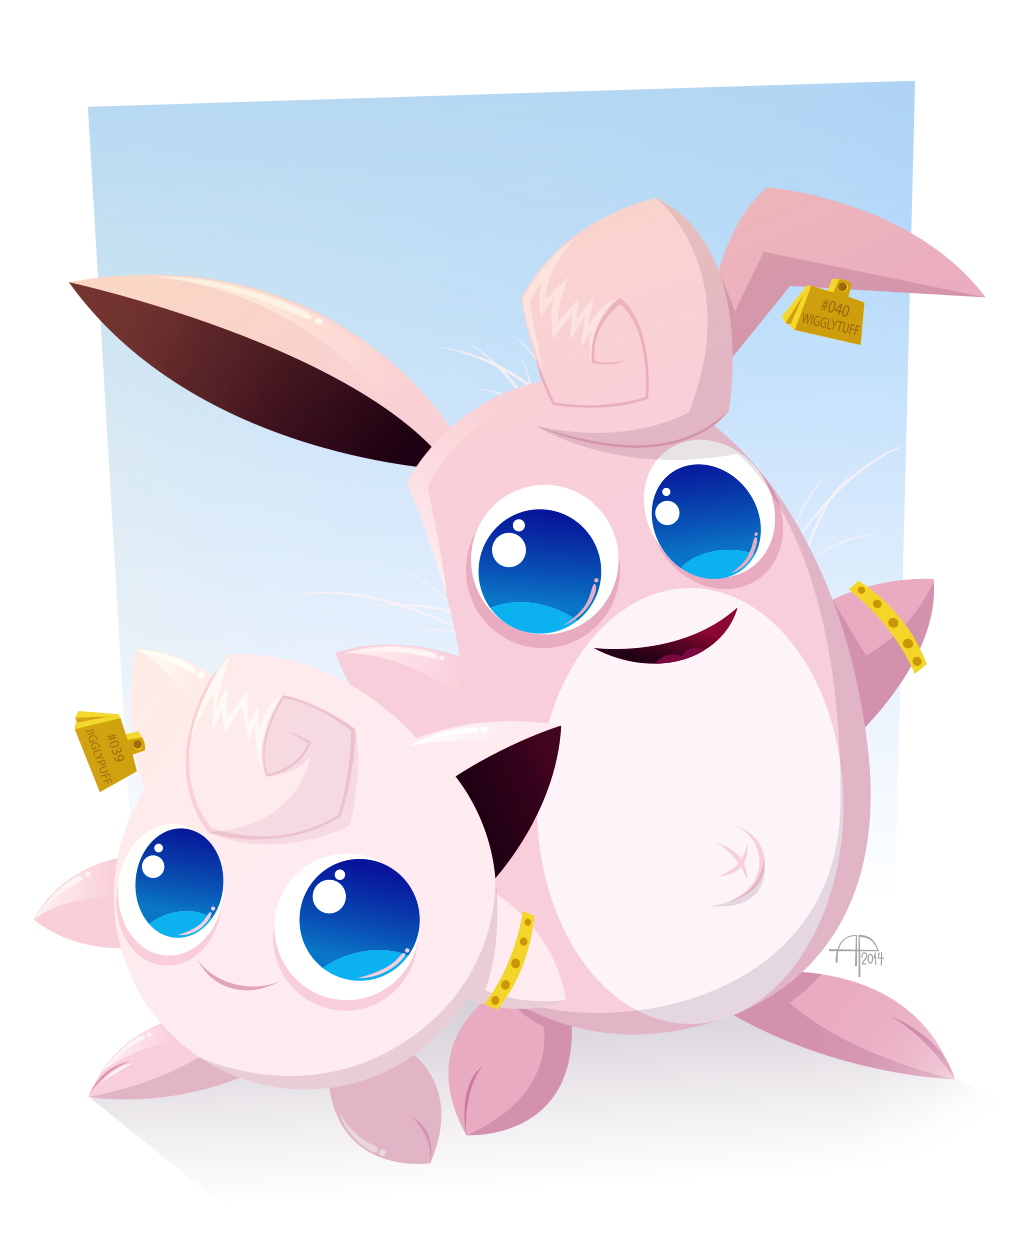 jigglypuff and wigglytuff final by placitte2012 on